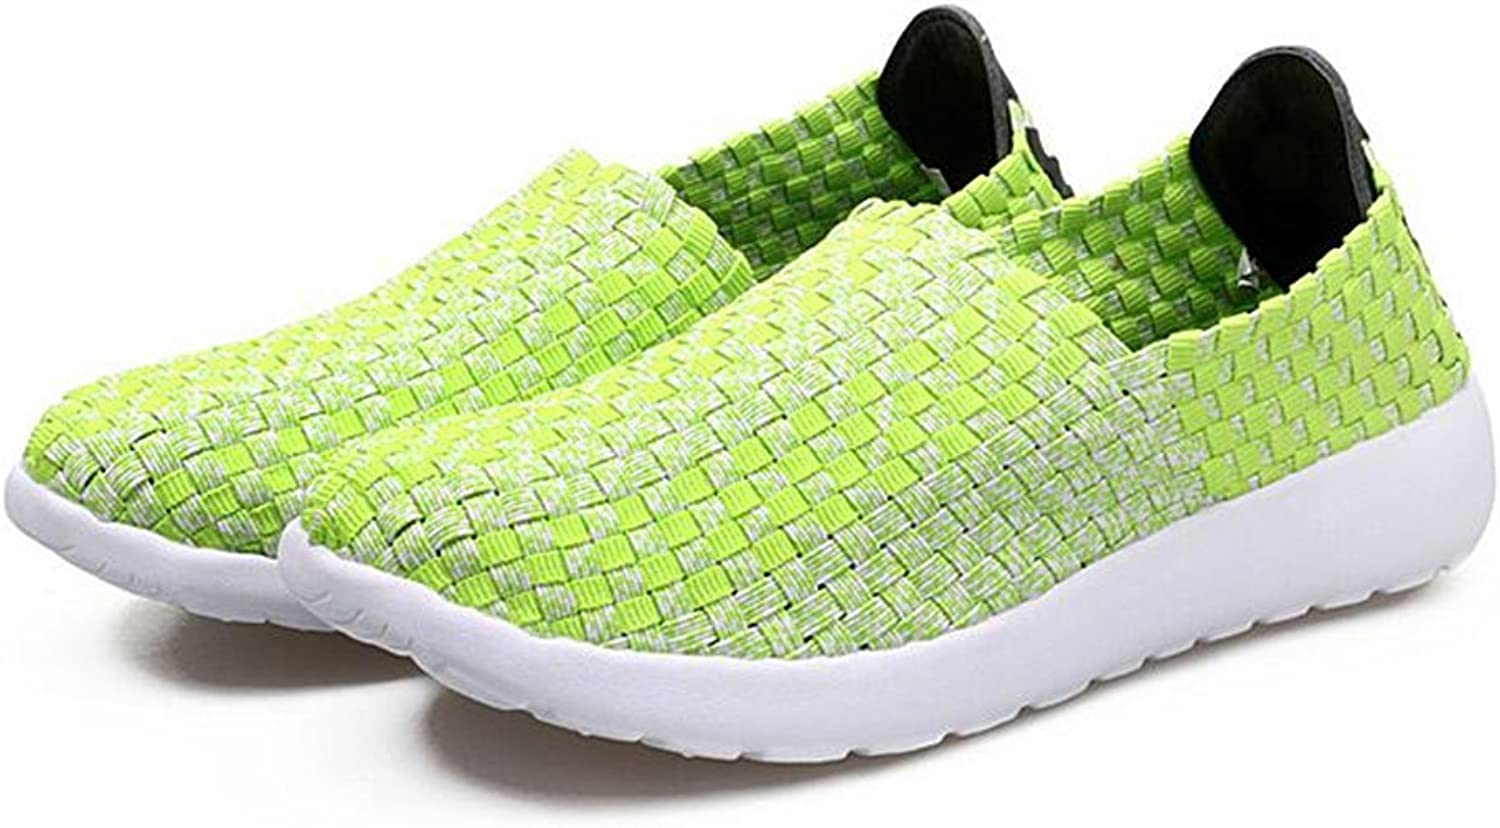 ALLAK Woven Flats Breathable Sneakers Walking shoes for Women